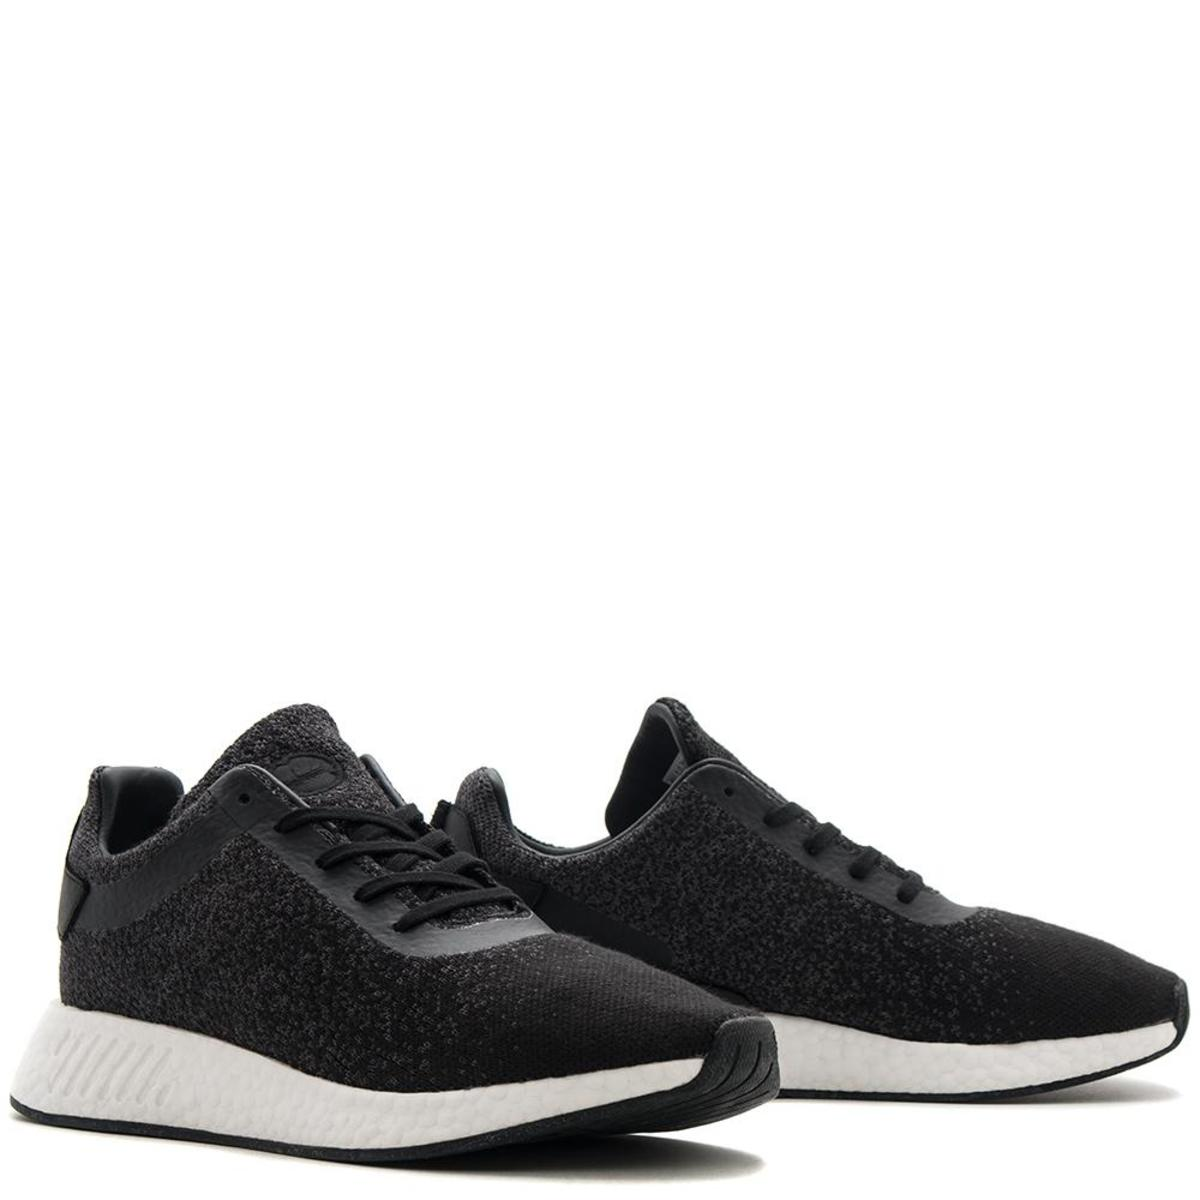 check out 88f97 43650 Adidas by Wings + Horns NMD R2 PK - Core Black